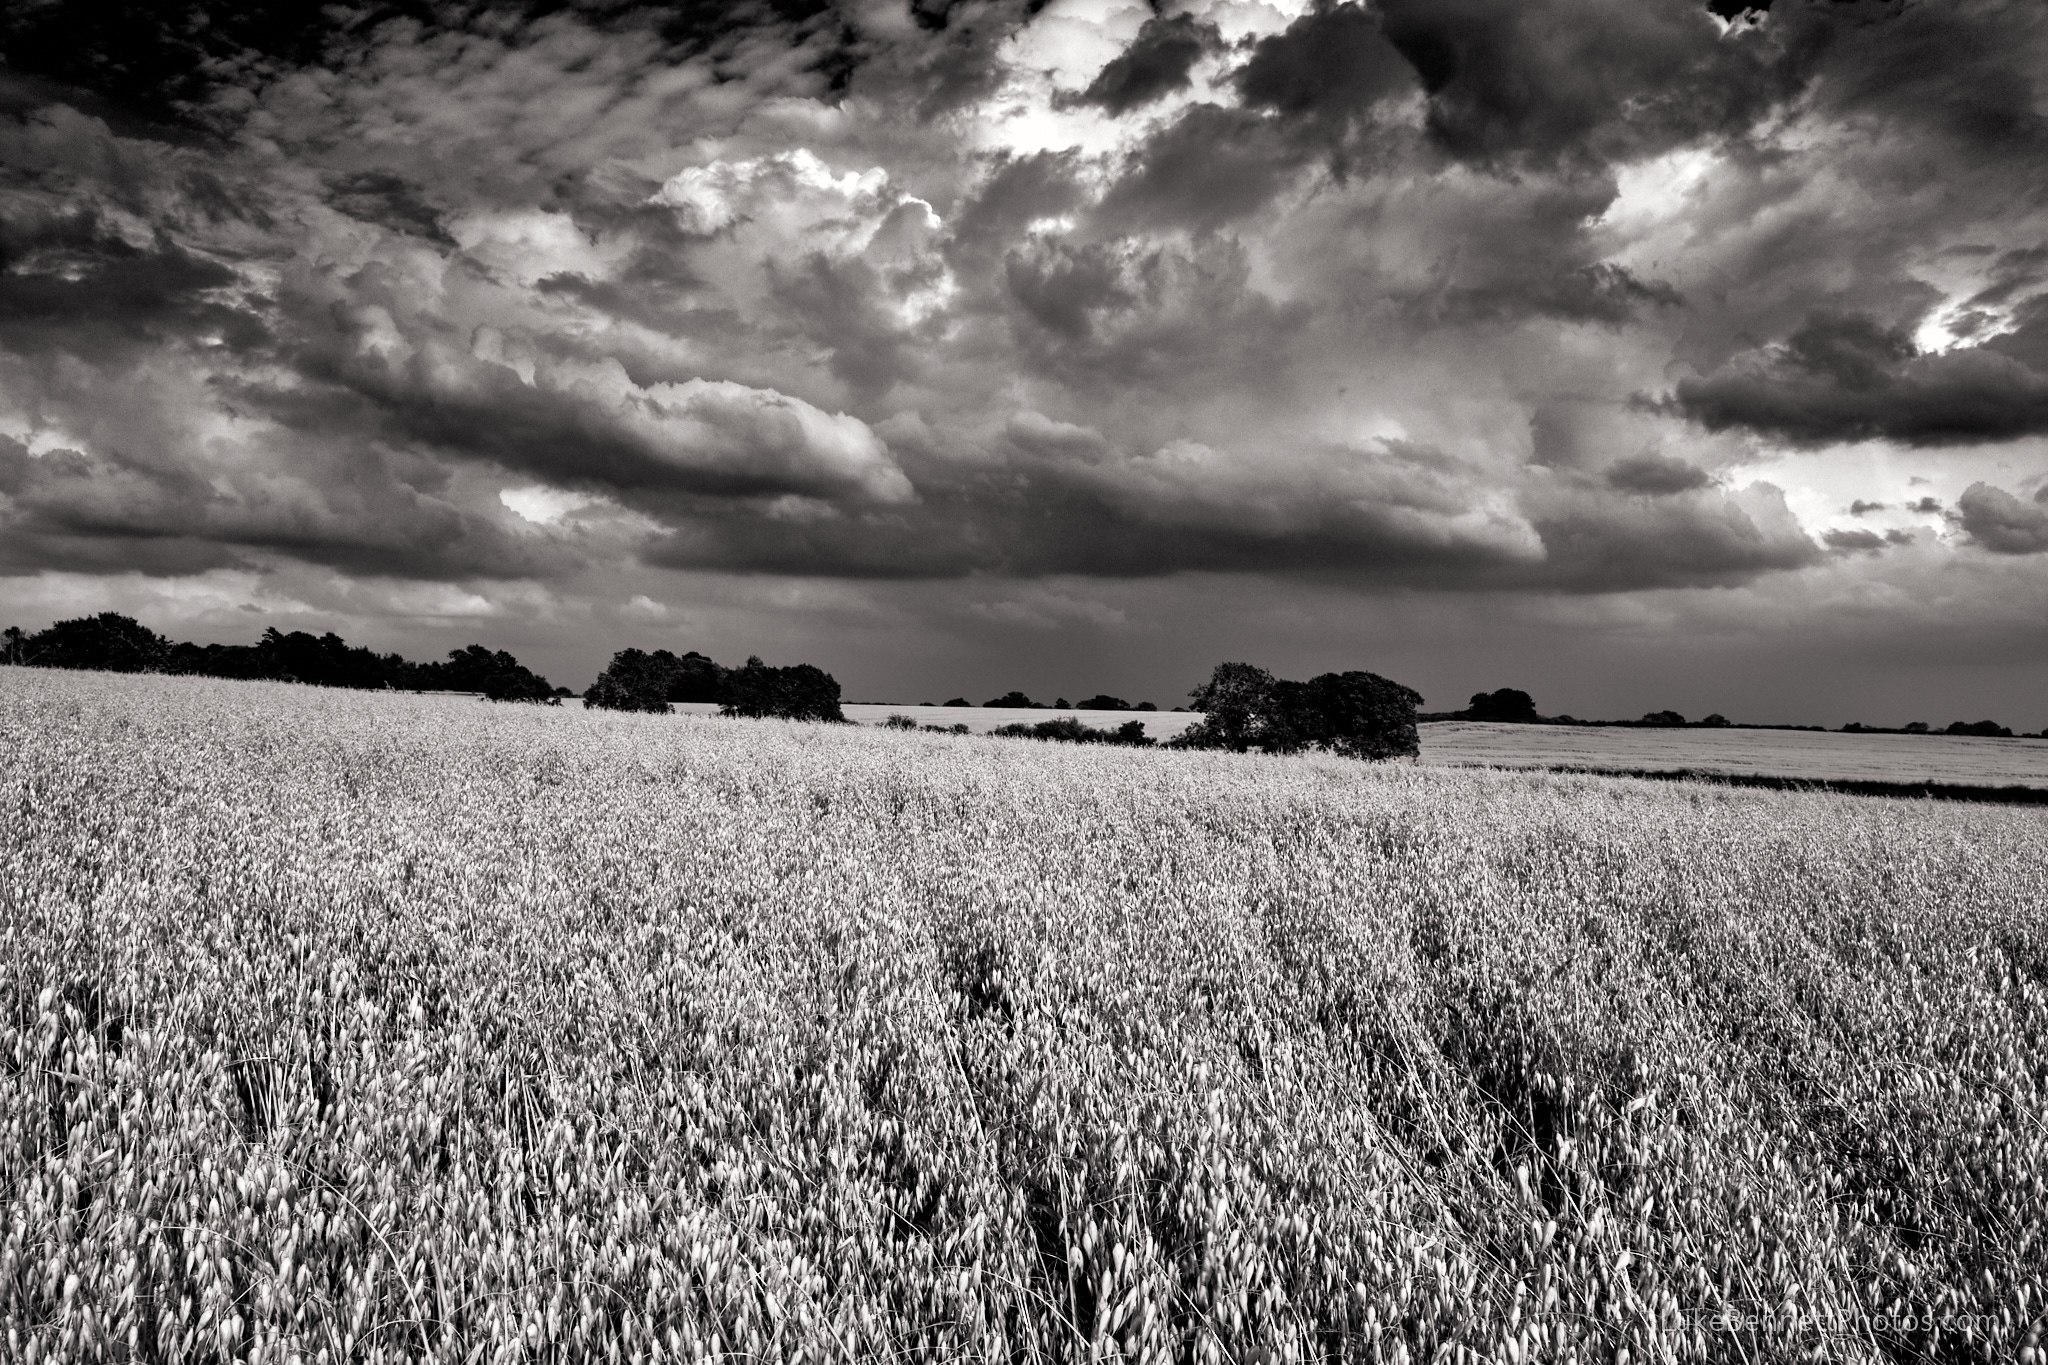 Storm clouds and oat fields